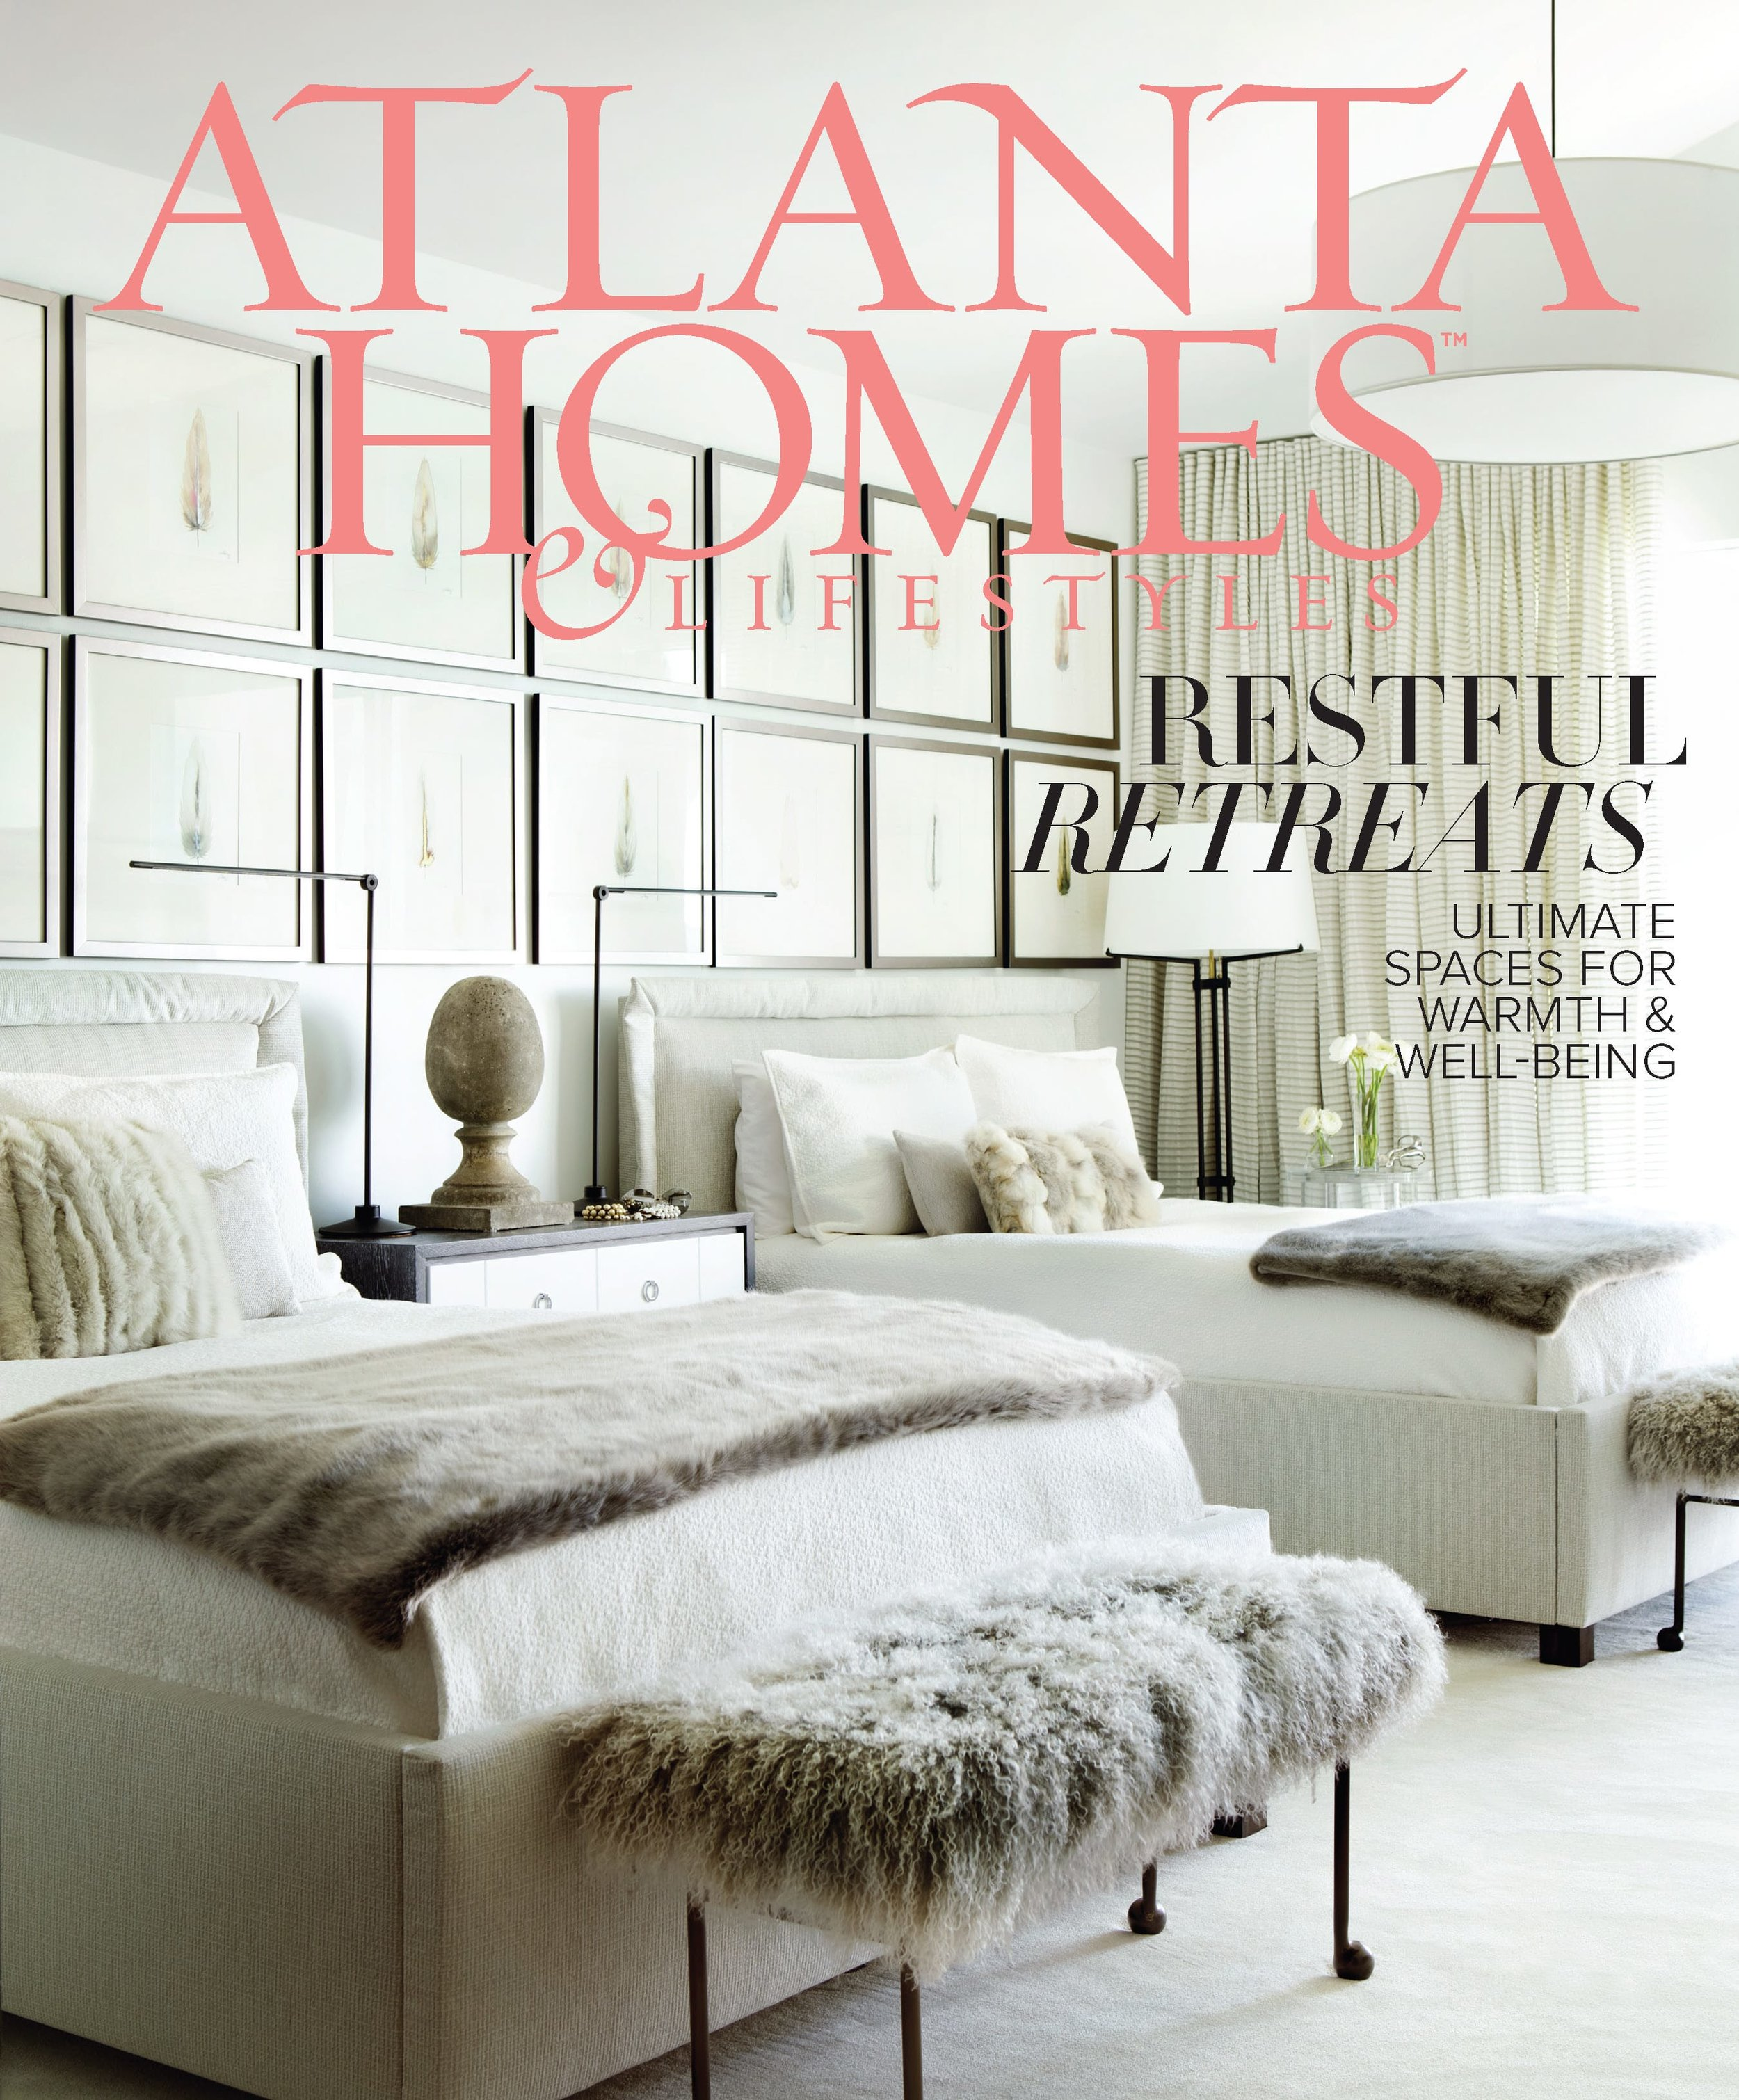 2019-05-Atlanta-Homes-Lifestyles-0.jpg